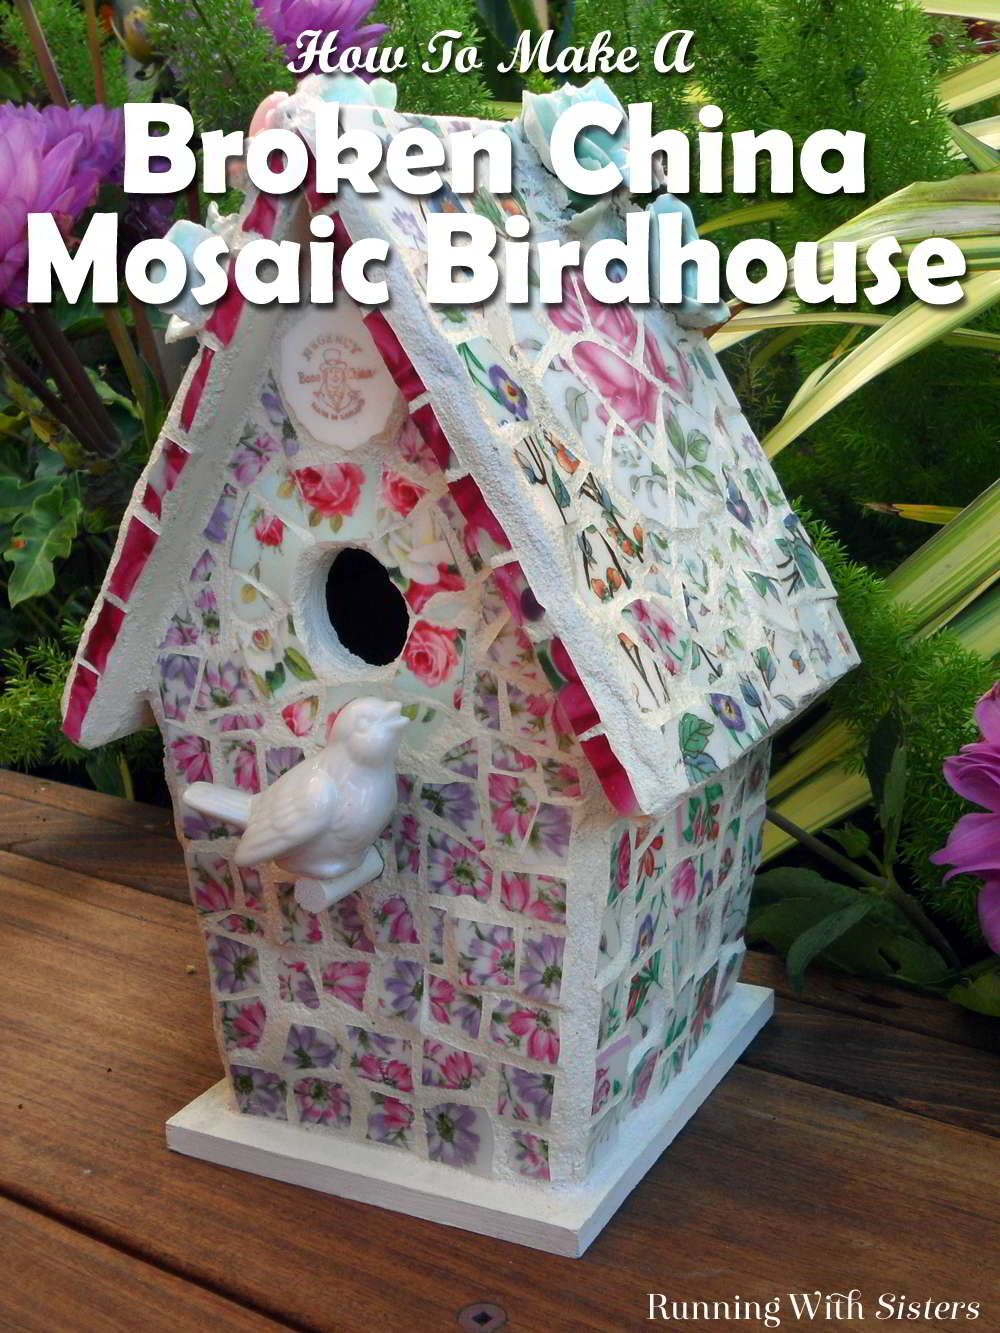 How to make a mosaic birdhouse